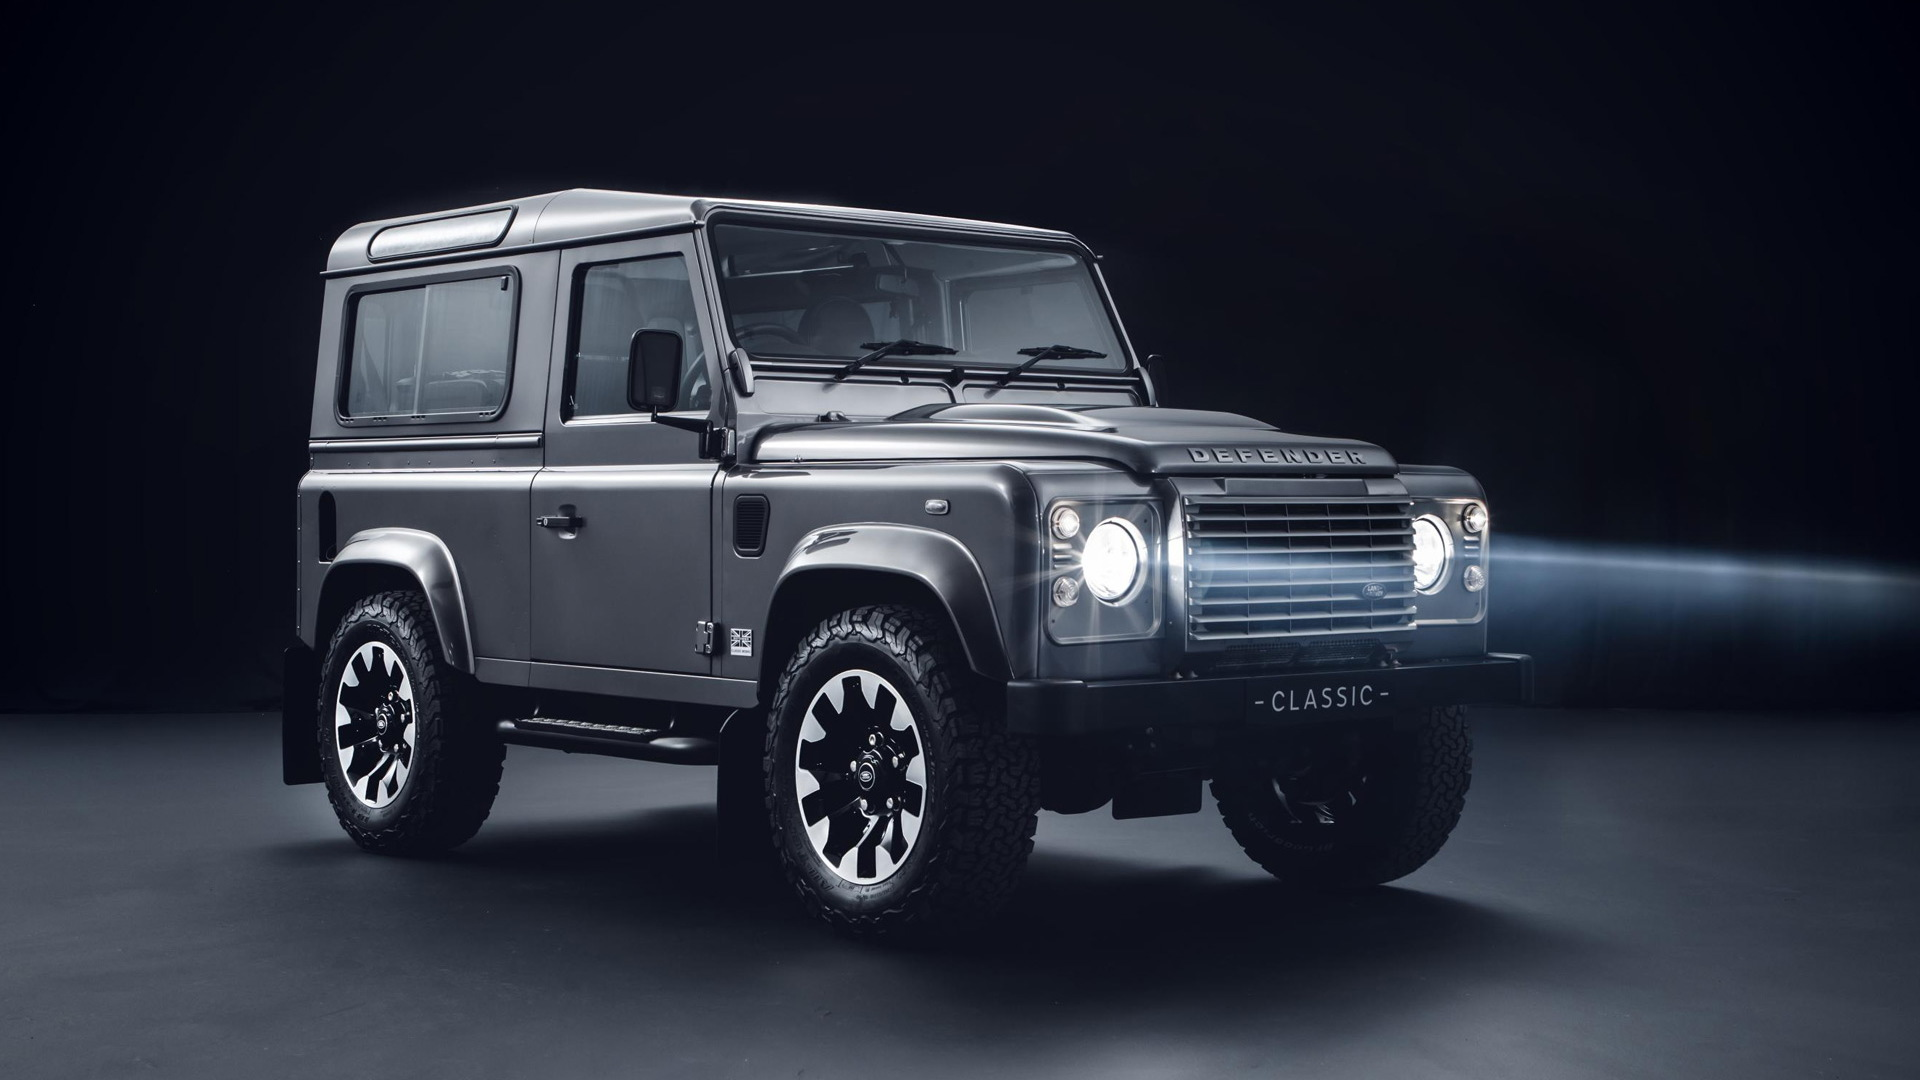 Land Rover Defender 90 with Land Rover Classic upgrades